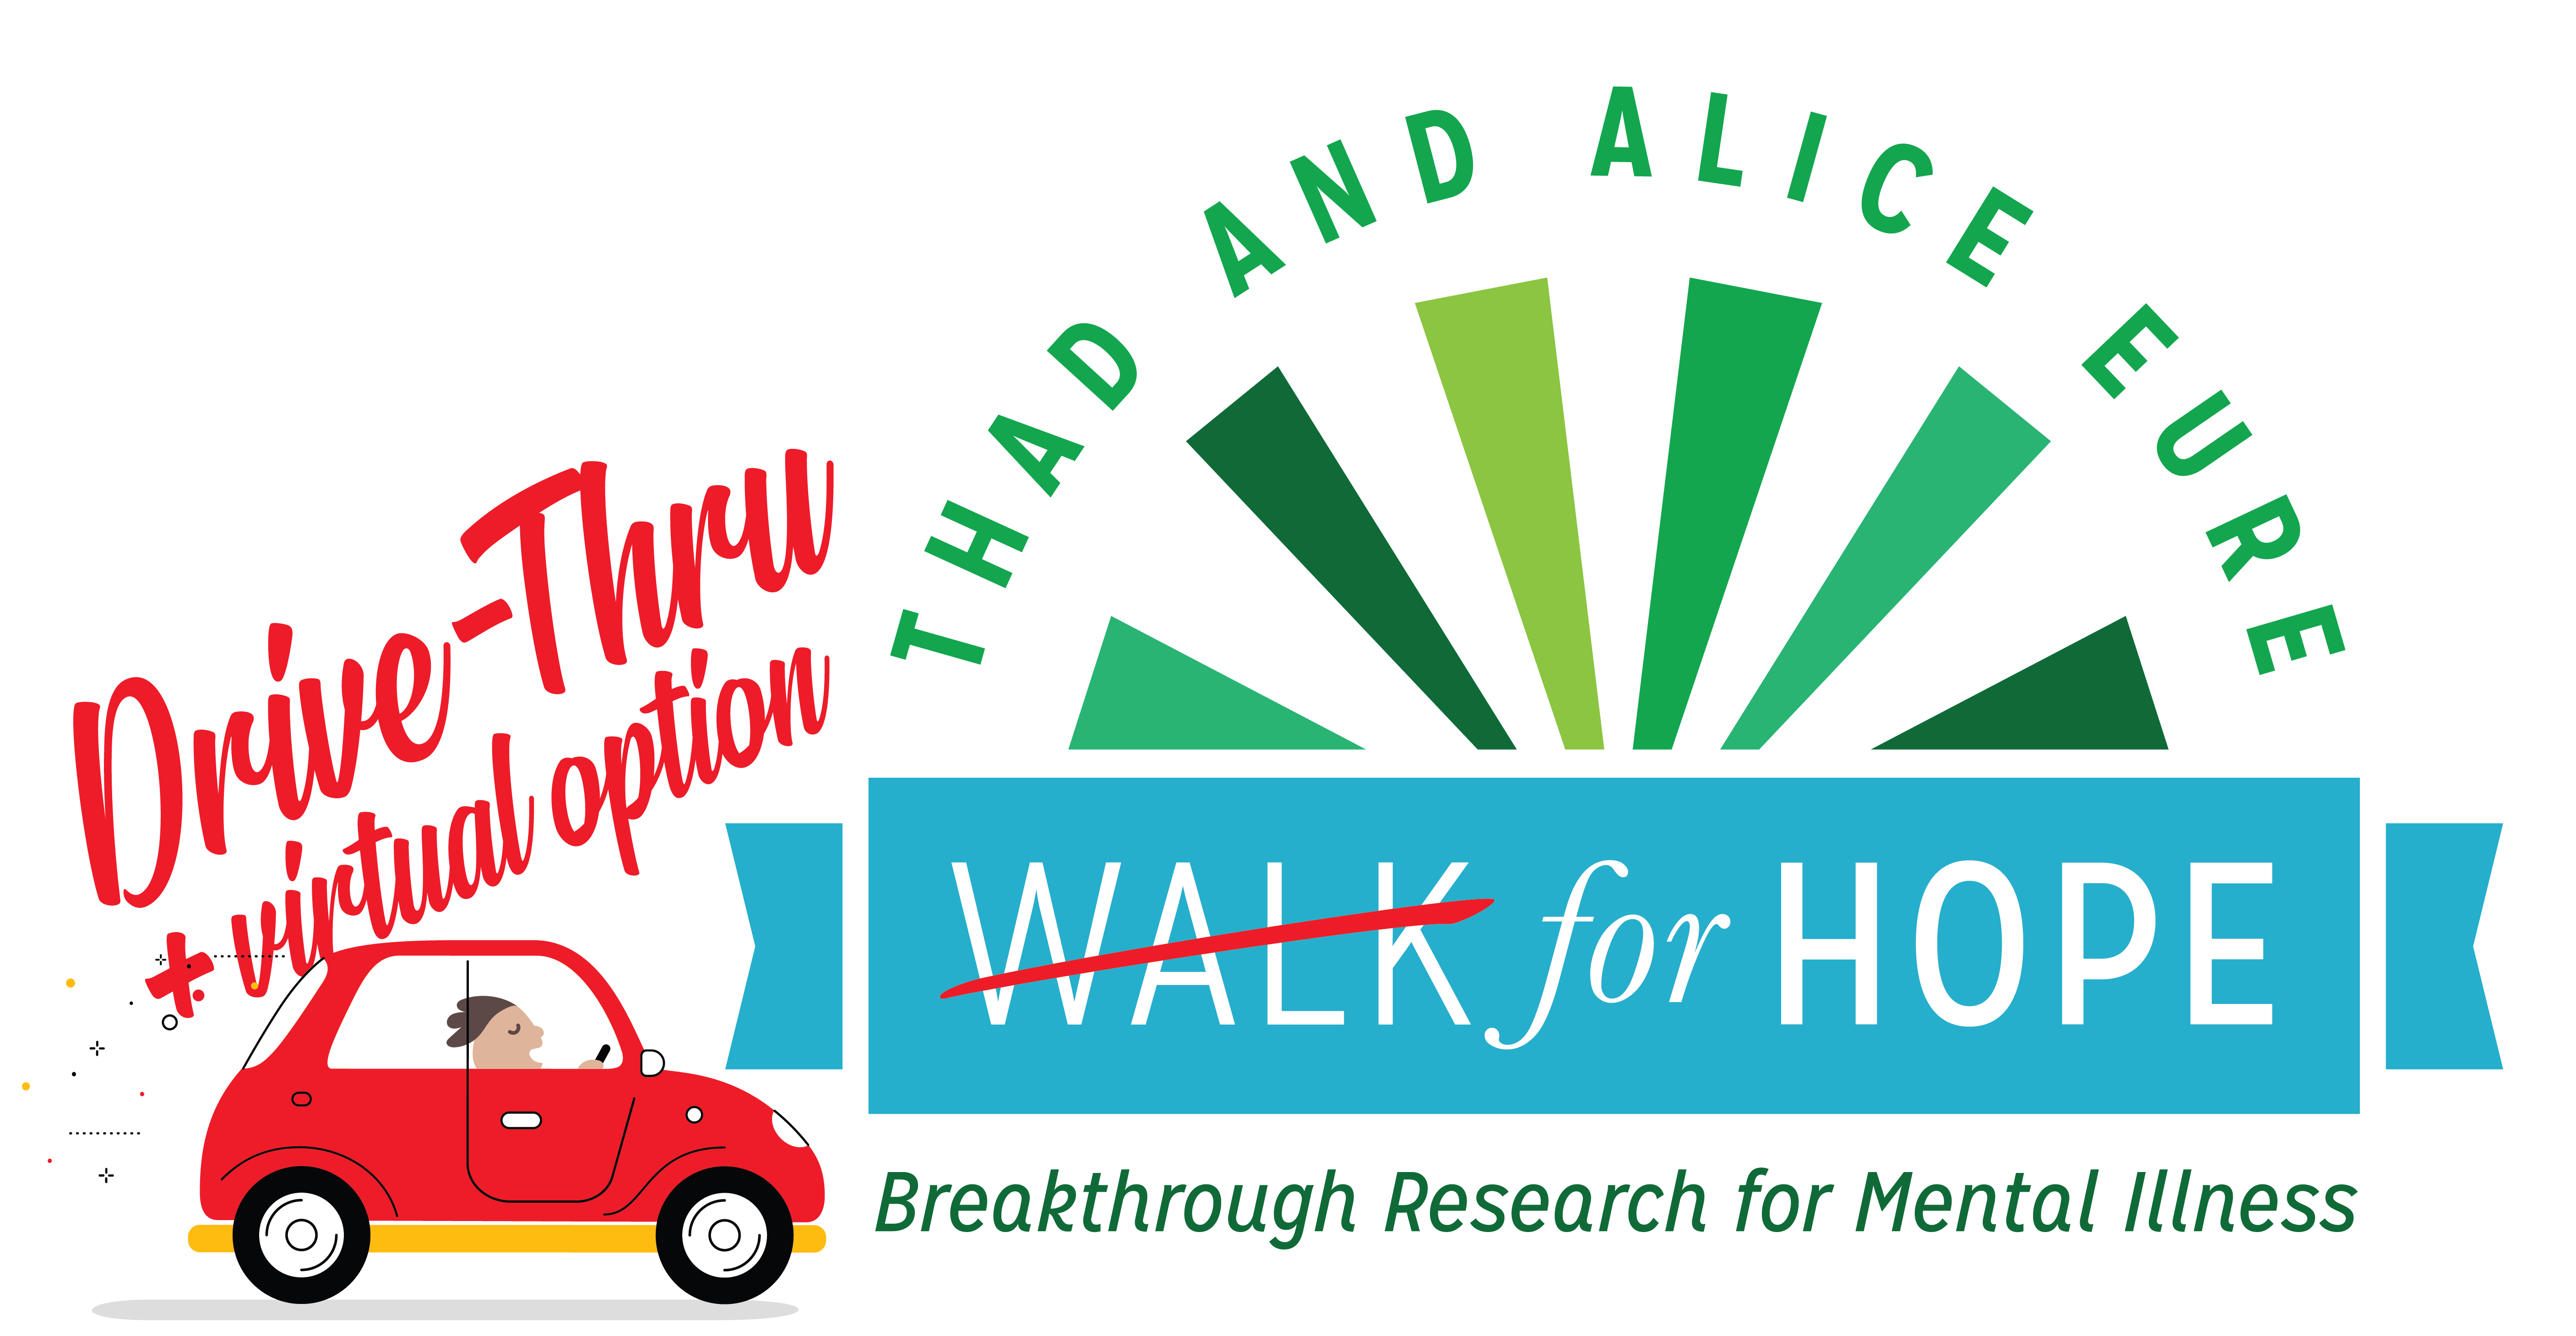 32nd Annual Thad & Alice Eure DRIVE-THRU / VIRTUAL Walk for Hope